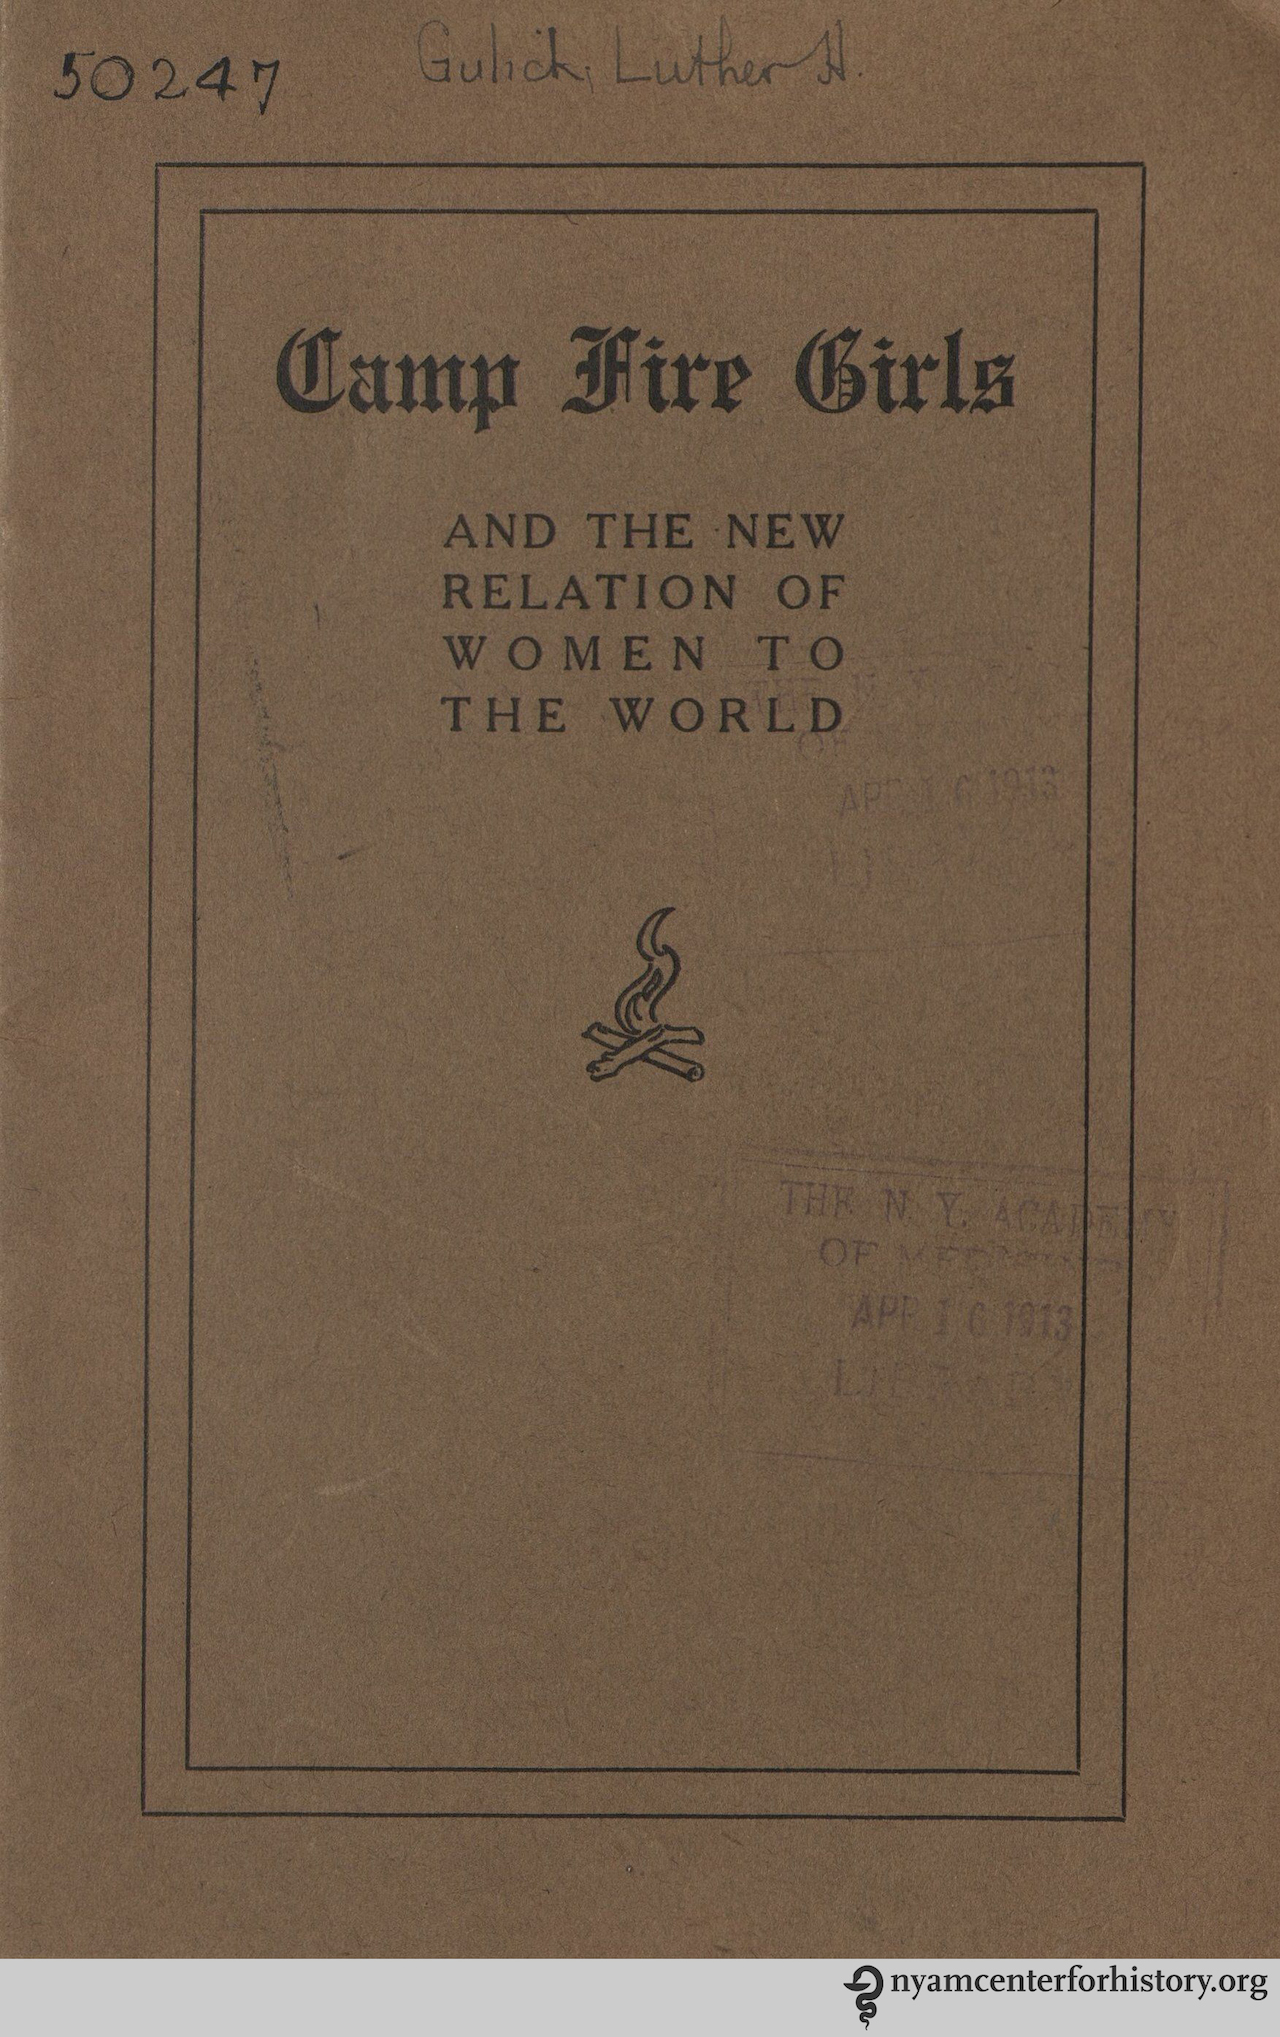 'The Camp Fire Girls: And the New Relation of Women to the World' by Luther Halsey Gulick (1912)